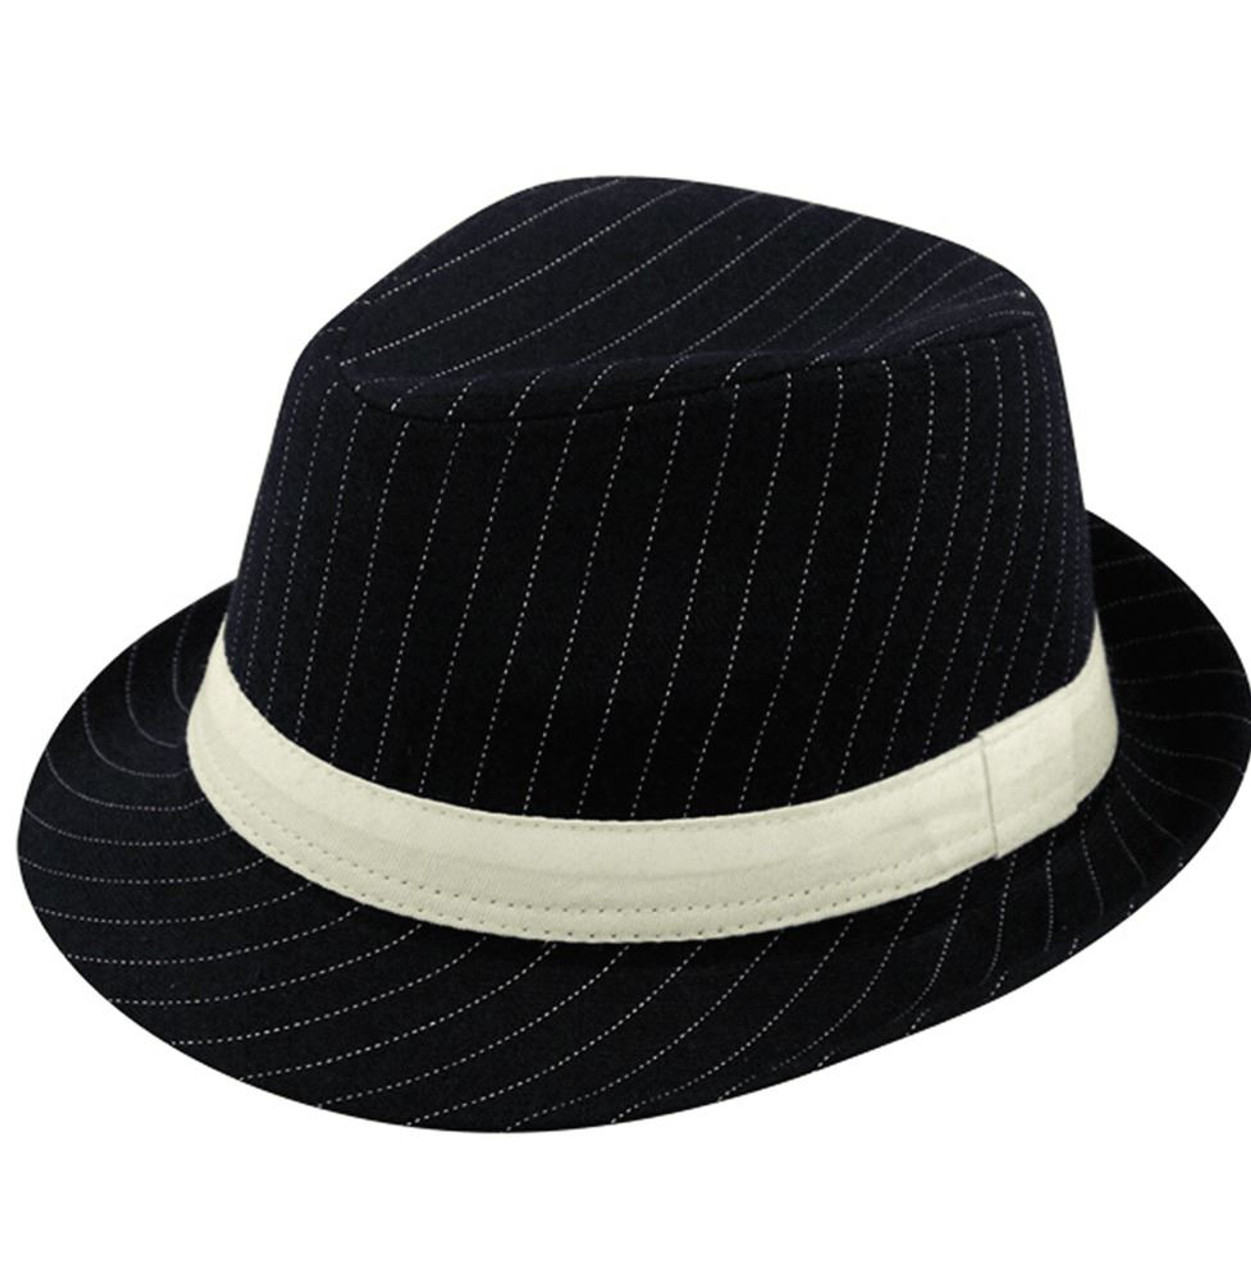 ddce856ae Mens Deluxe Black Pin Stripe Gangster Fancy Dress Trilby Hat Accessory